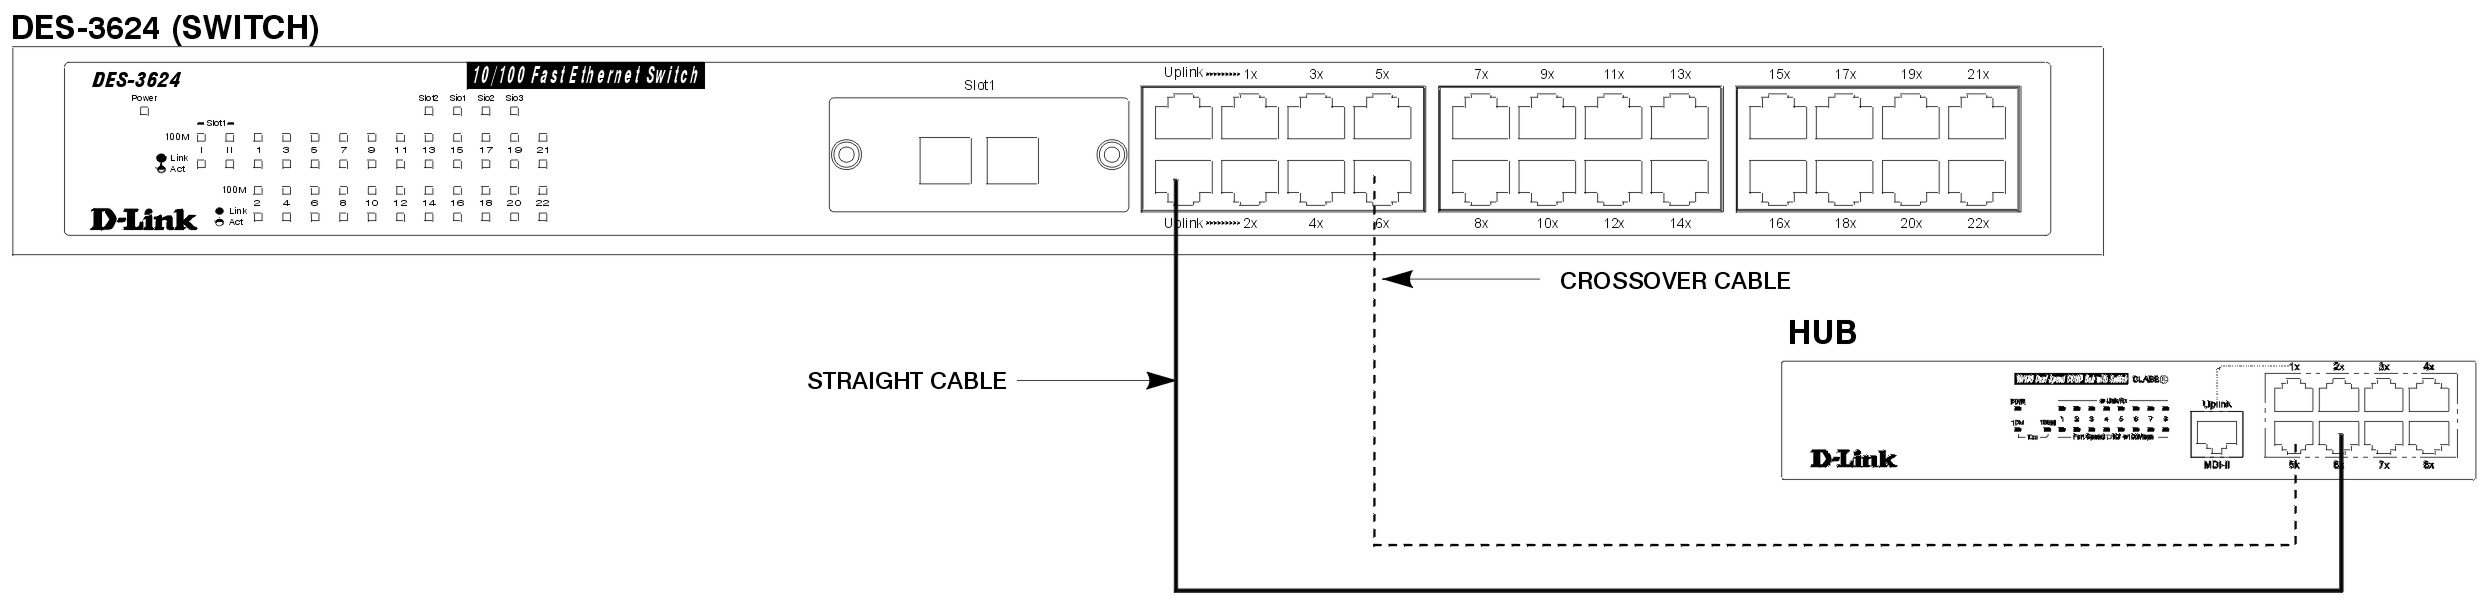 Des 3624 Fast Ethernet Switch Figure 4 Wiring Diagram For An Crossover Cable Alternatively If You Have A Can Save The Uplink Ports Other Connections And Make This One From Crossed Port To Another